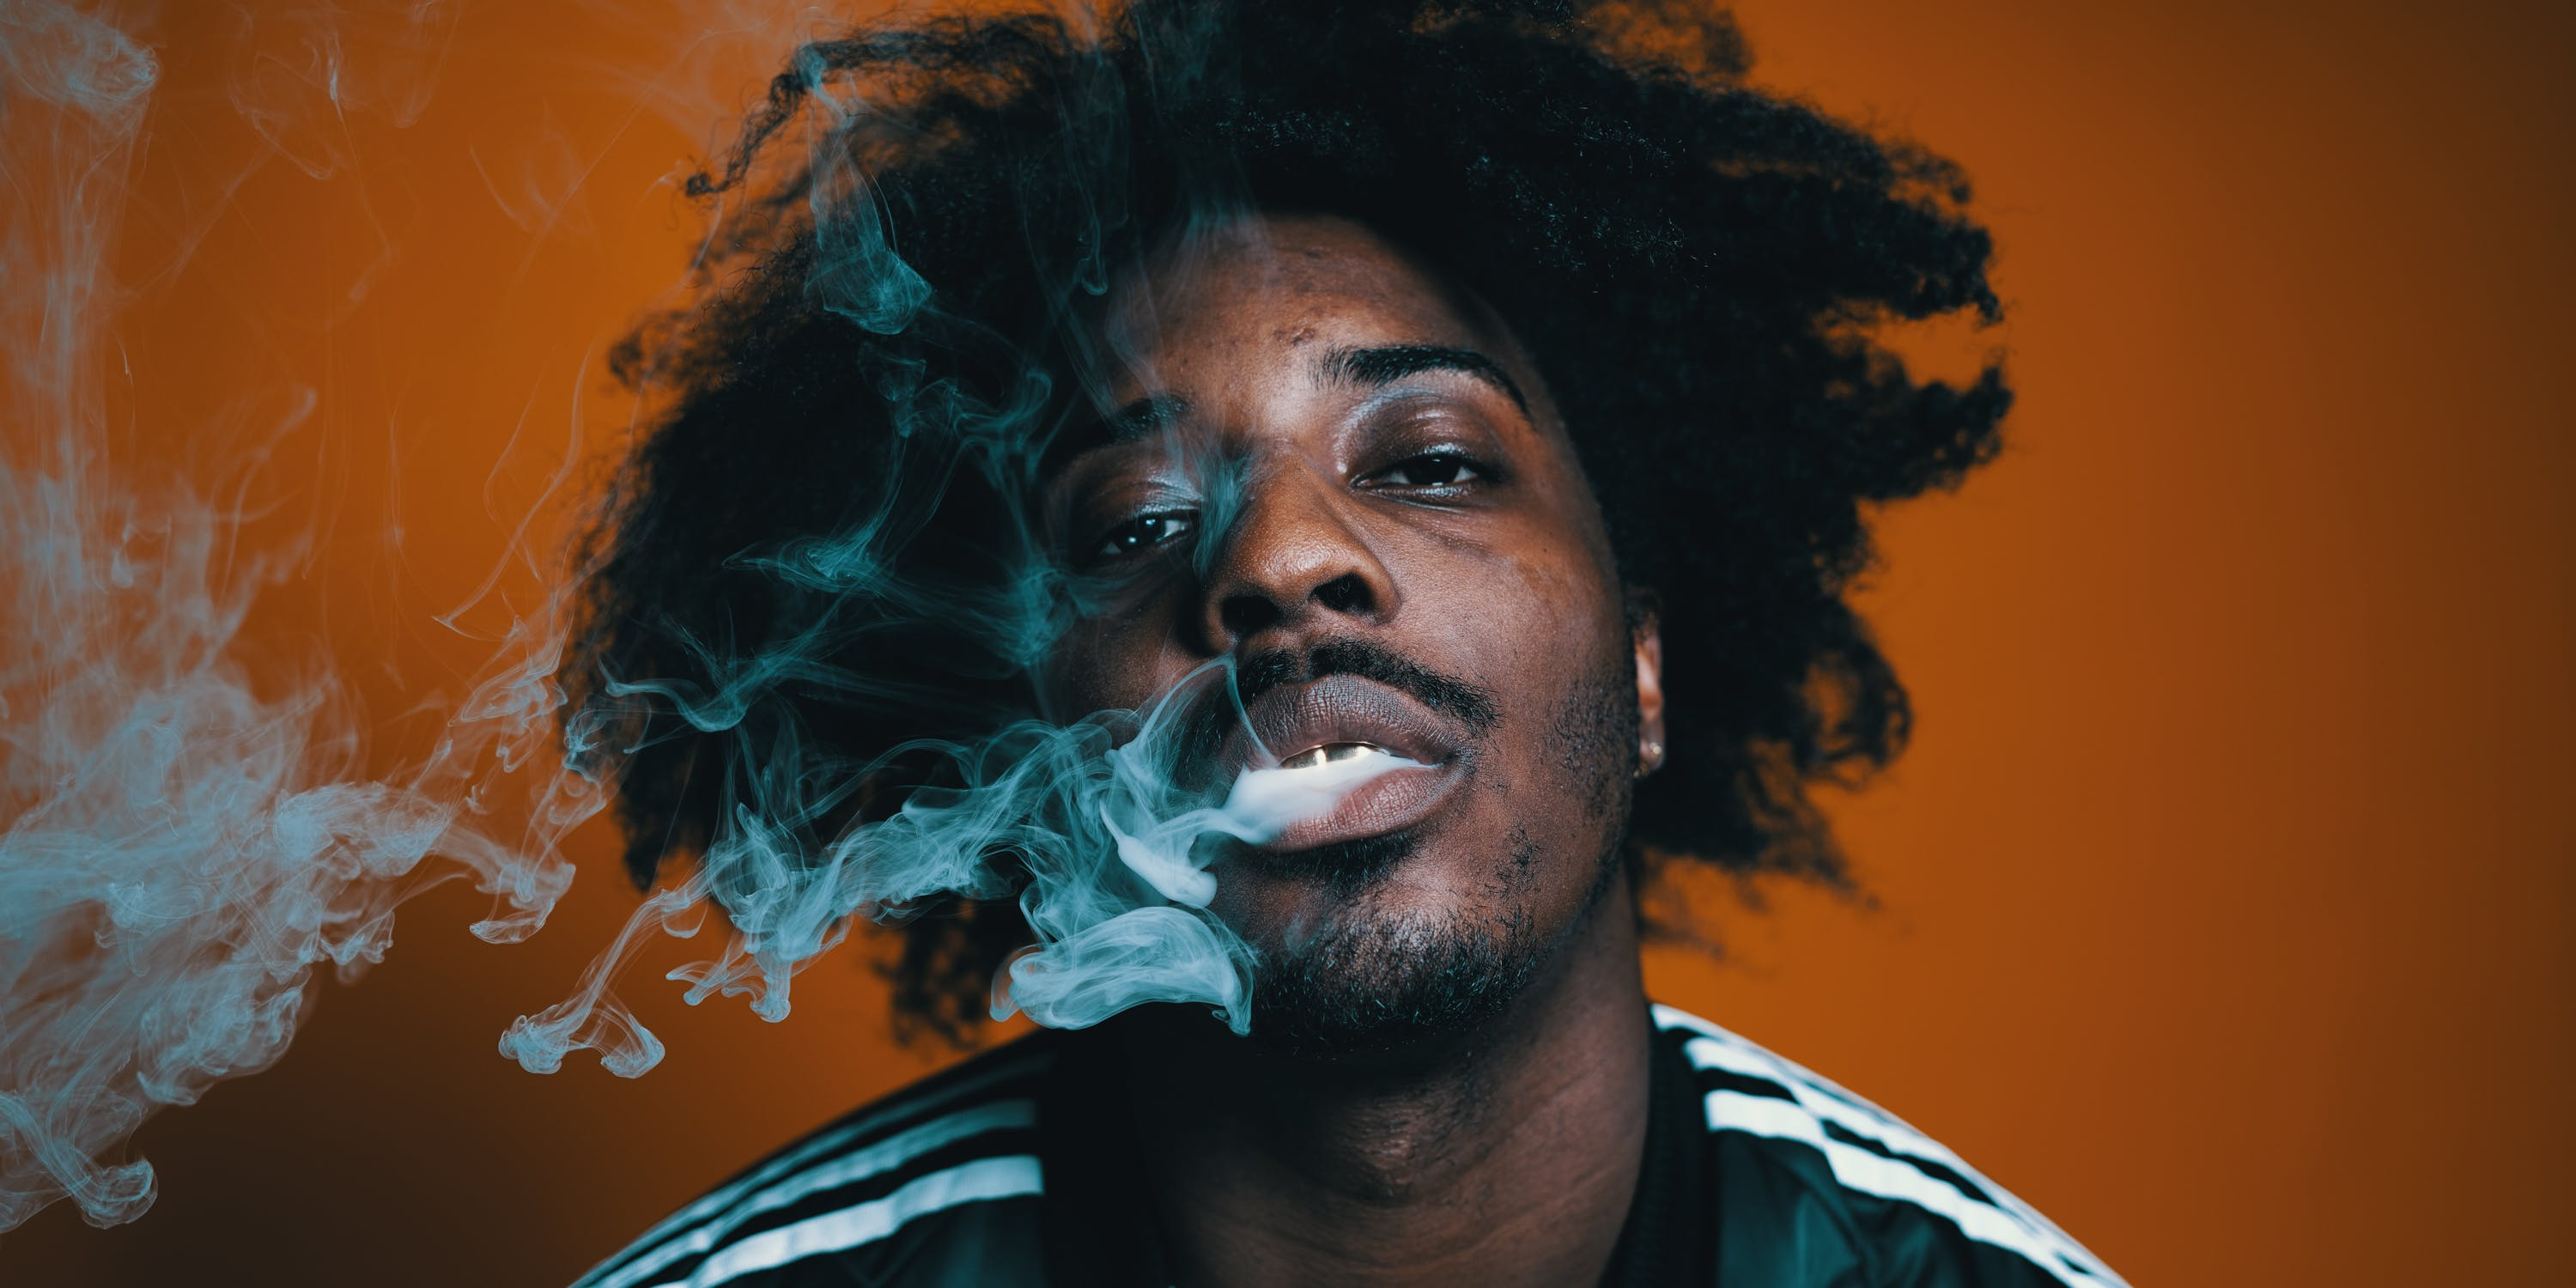 Sean Leon blows out a milky cloud of marijuana smoke